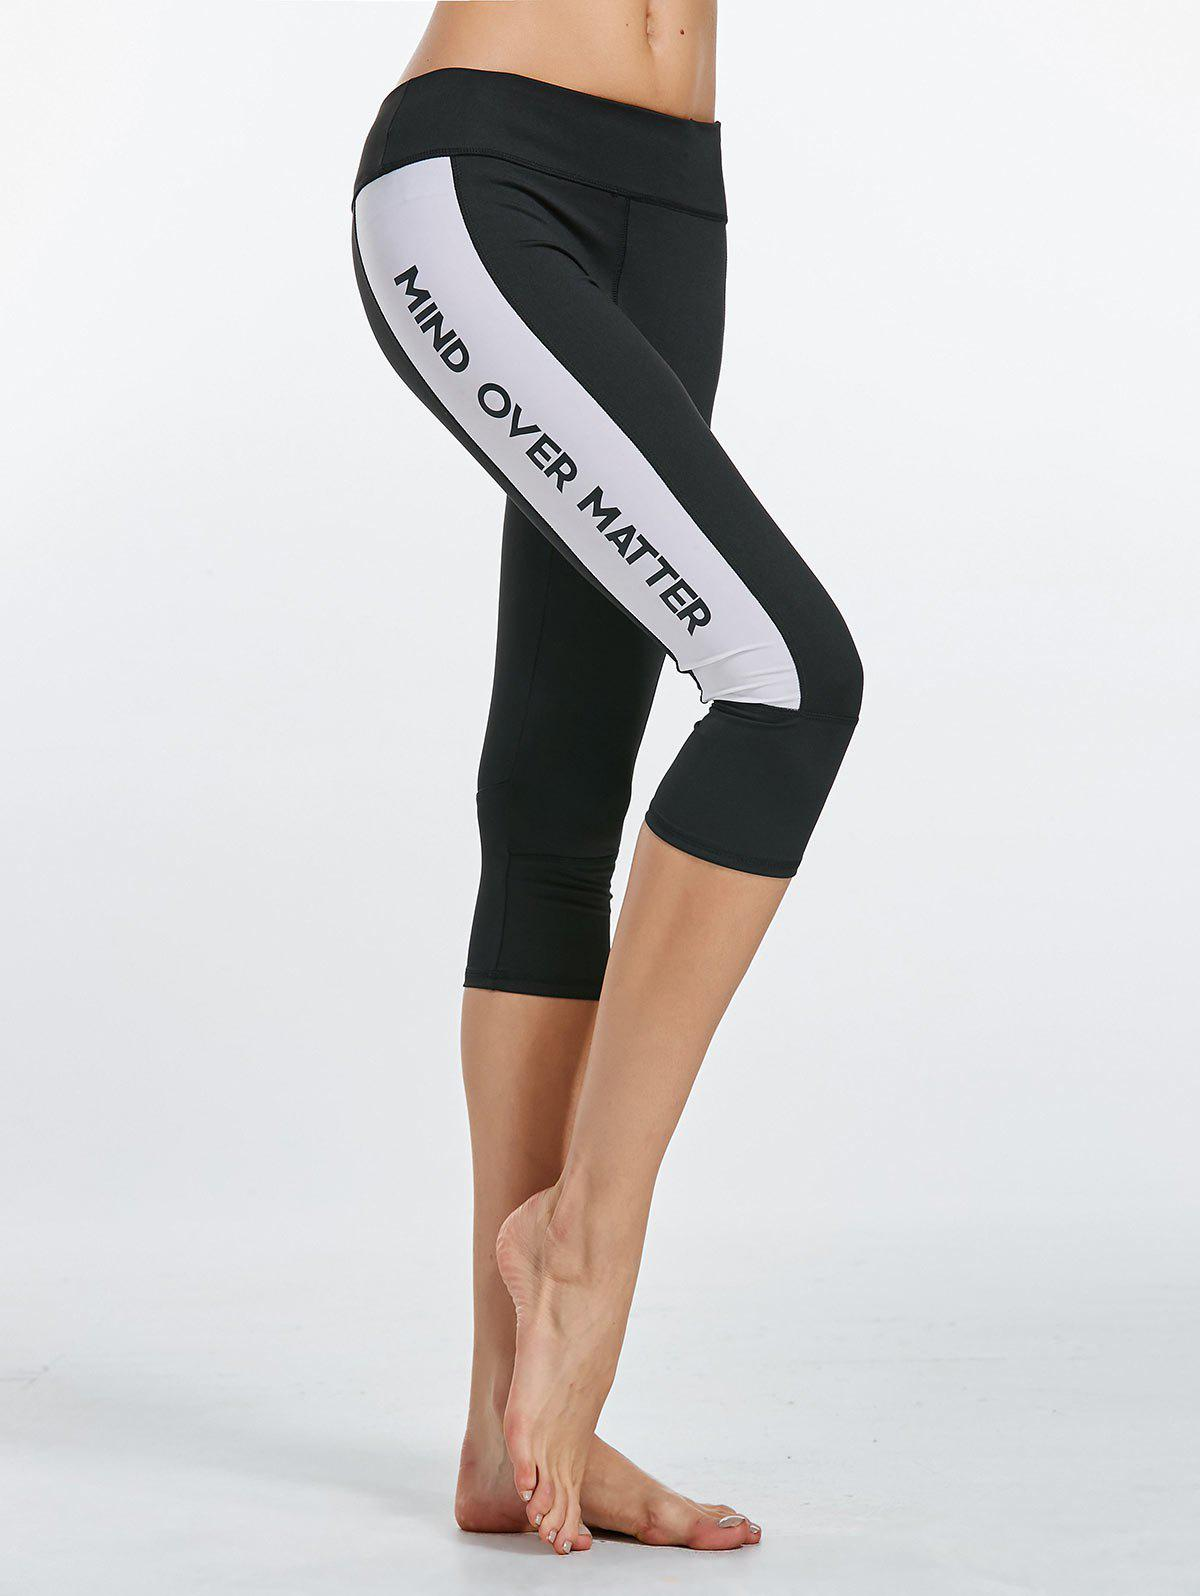 Side Letter Skinny Yoga Leggings jp 158 4 копилка кошка pavone 1240391